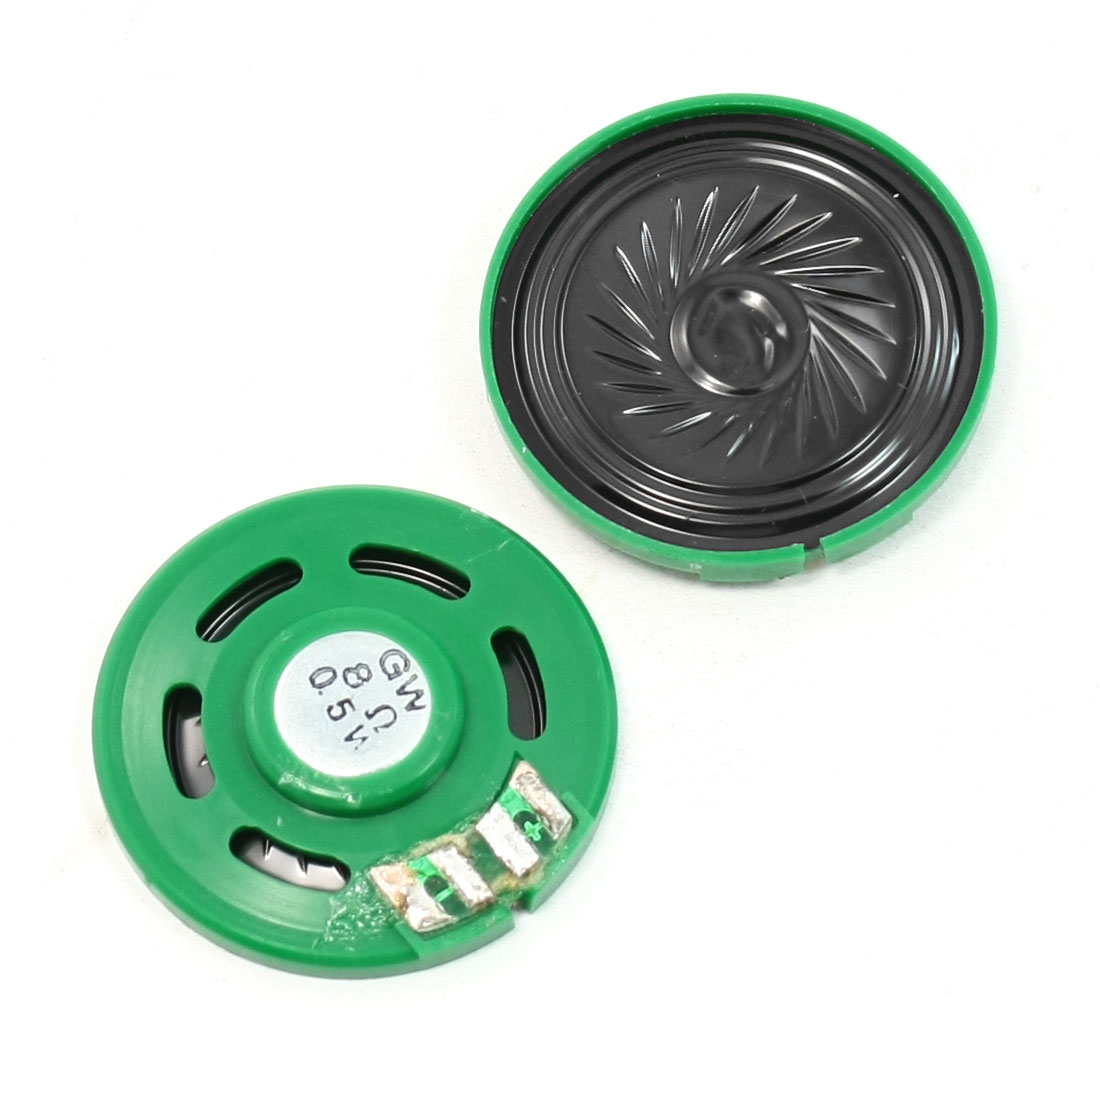 2 Pcs 39mm Dia Green Black Round Magnetic Plastic Speaker Horn 8 Ohm 0.5W